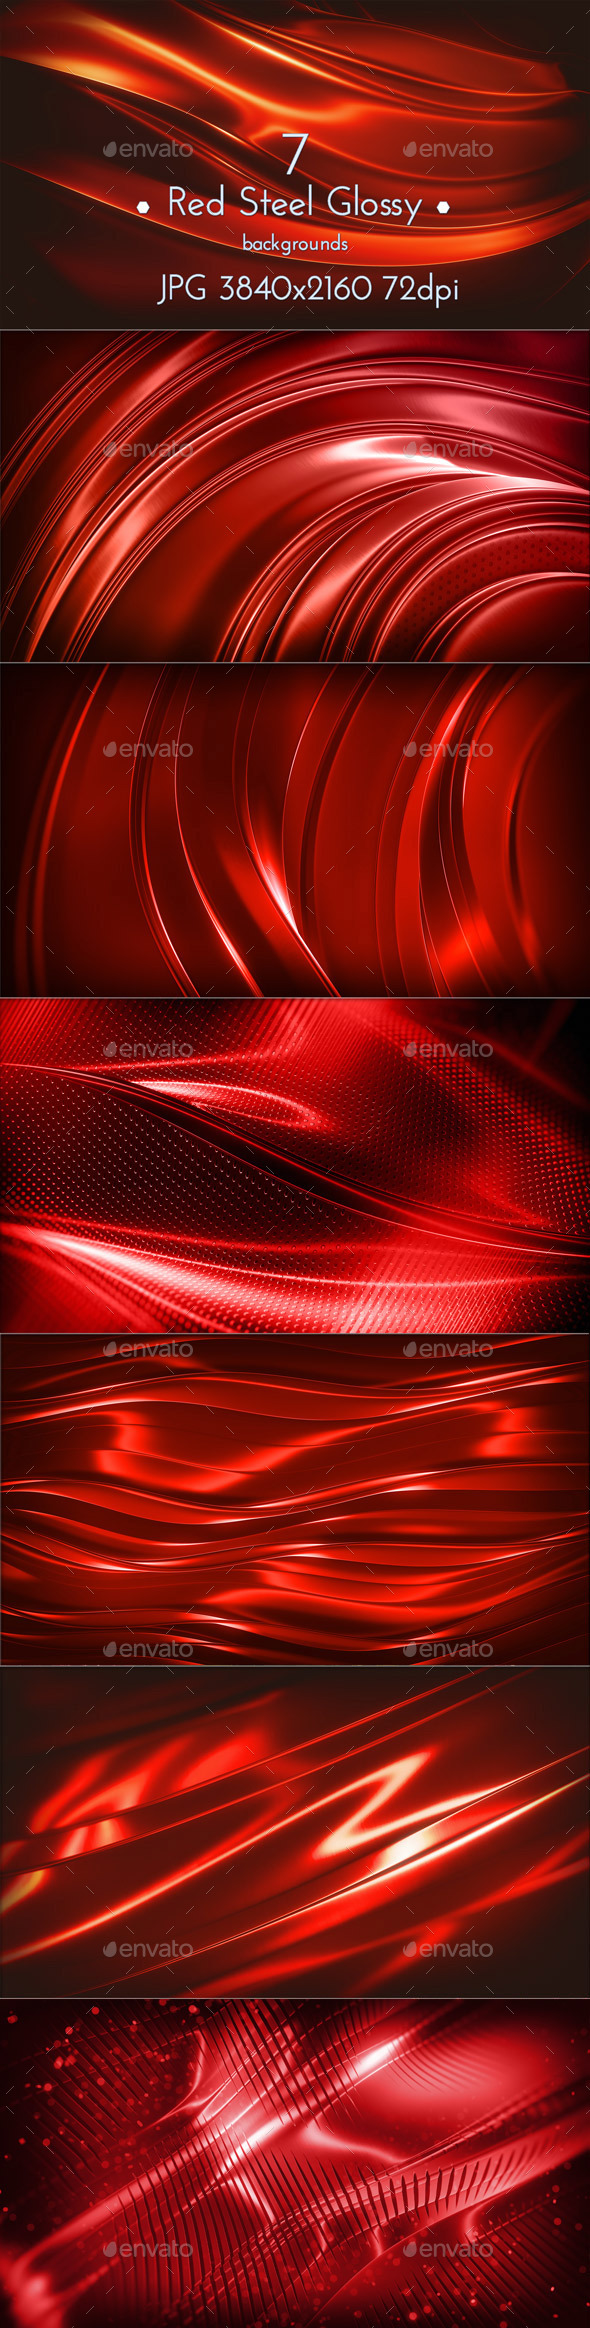 Red Steel Glossy Surface - Abstract Backgrounds